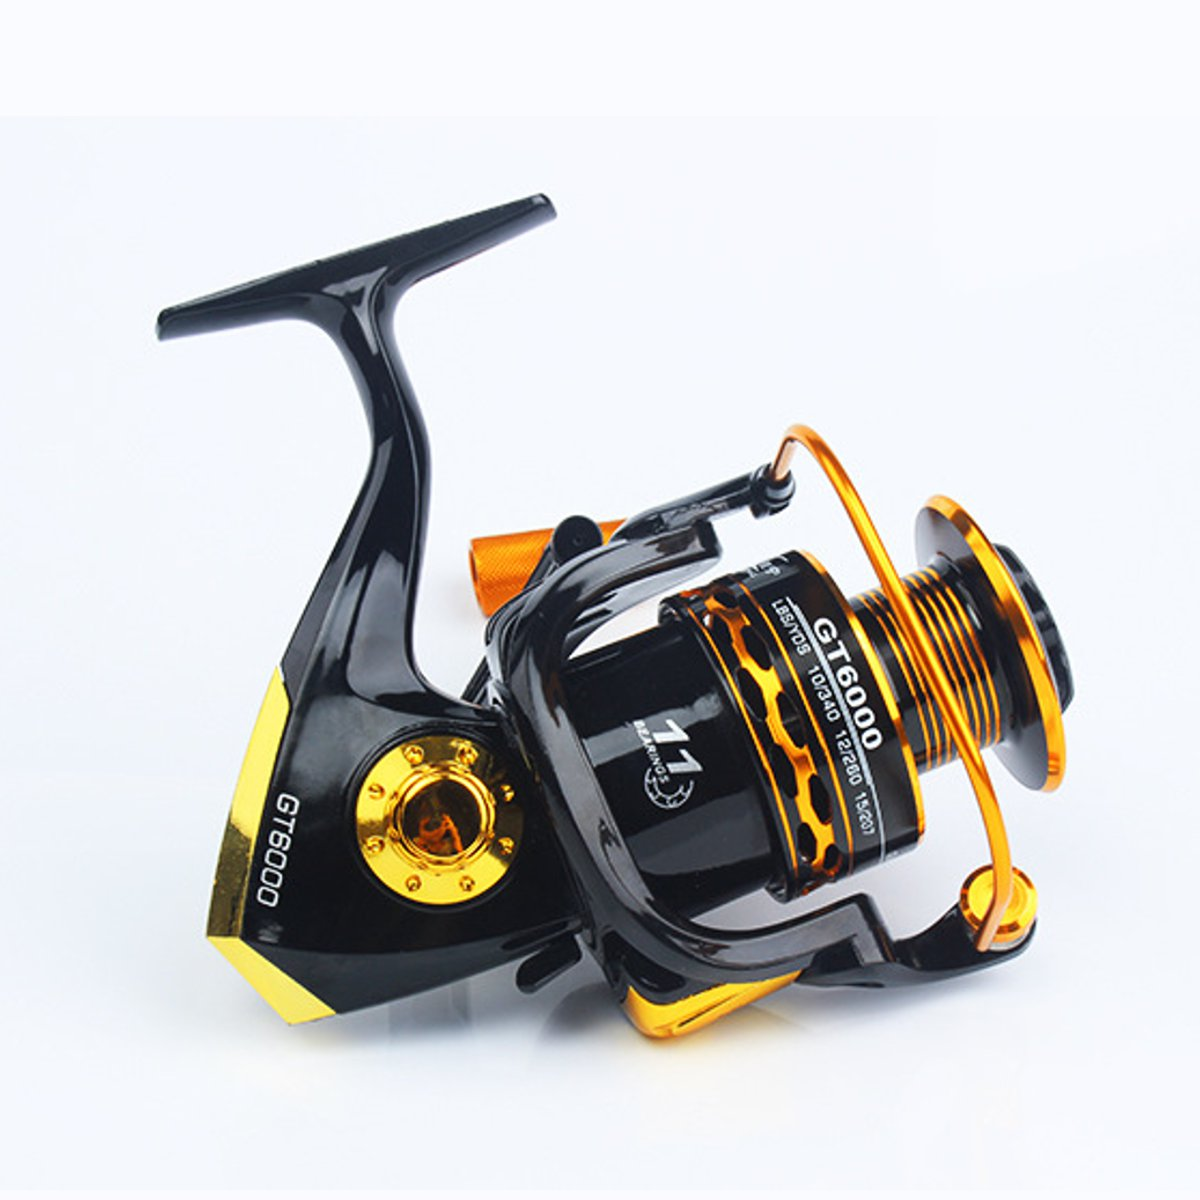 ZANLURE Metal+Plastic 4000-6000 Spinning Fishing Reel Salwater Freshwater Fishing Reel